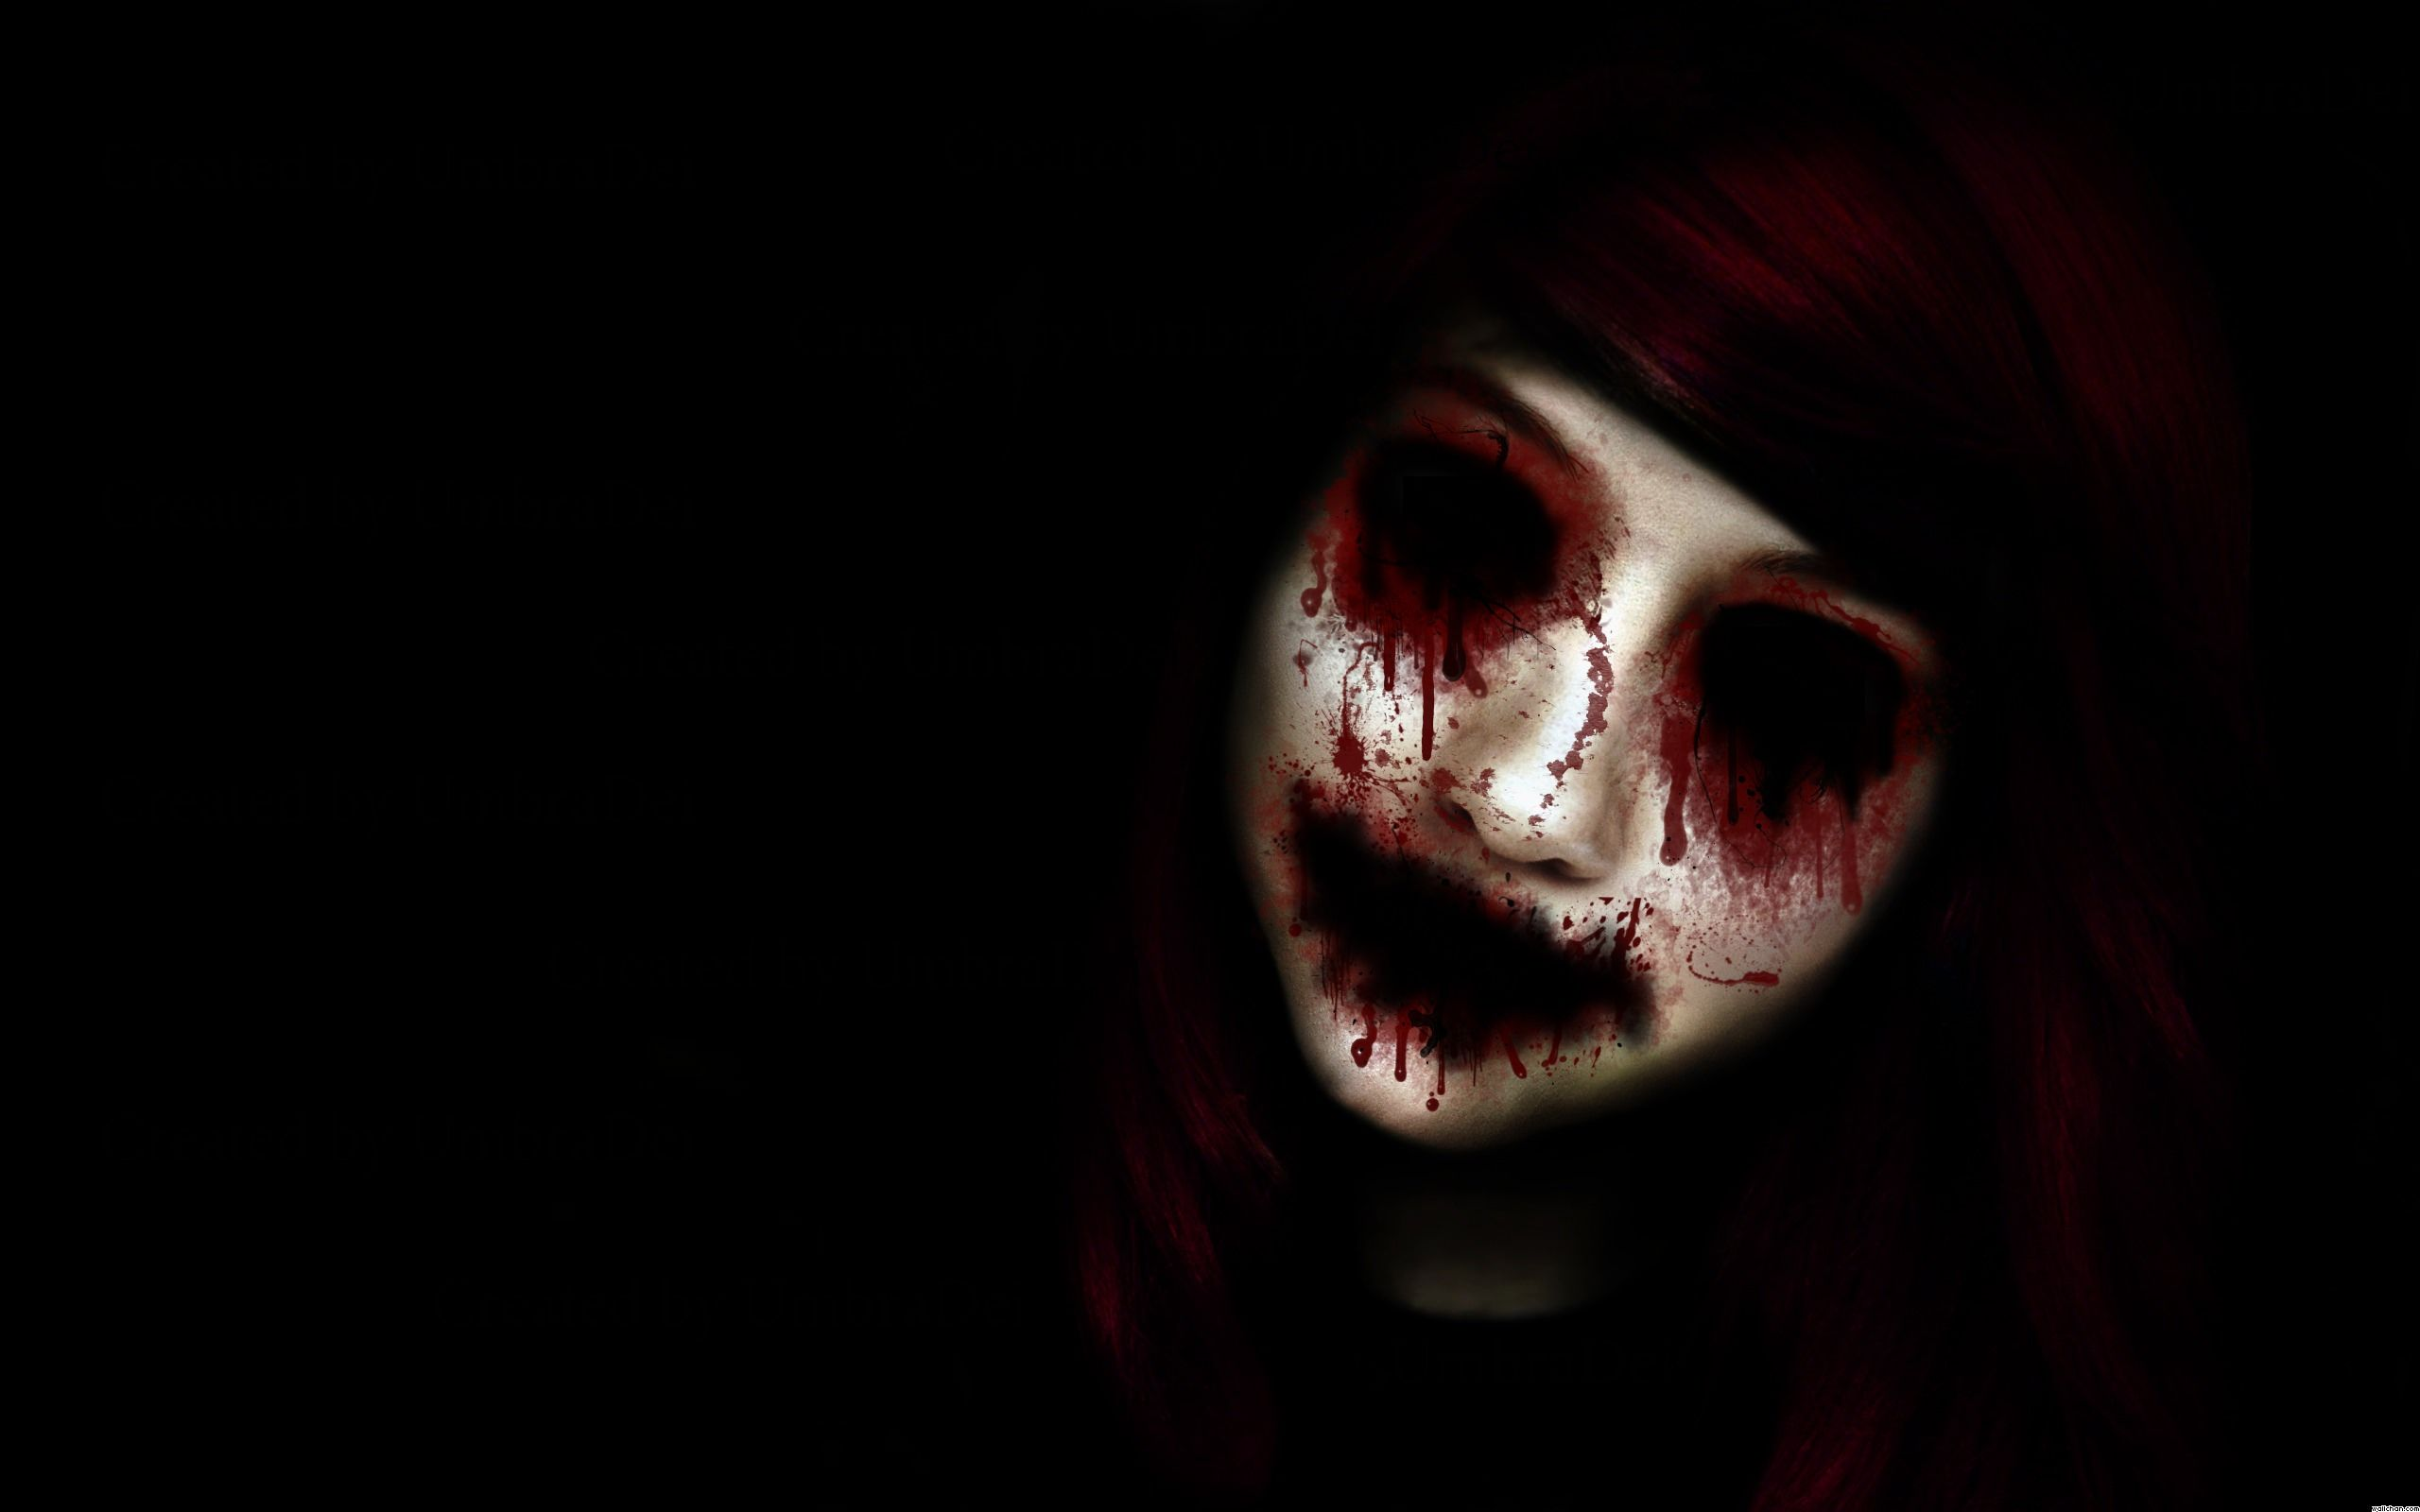 Creepy Wallpaper Hd Free Download Creepy photos, Creepy